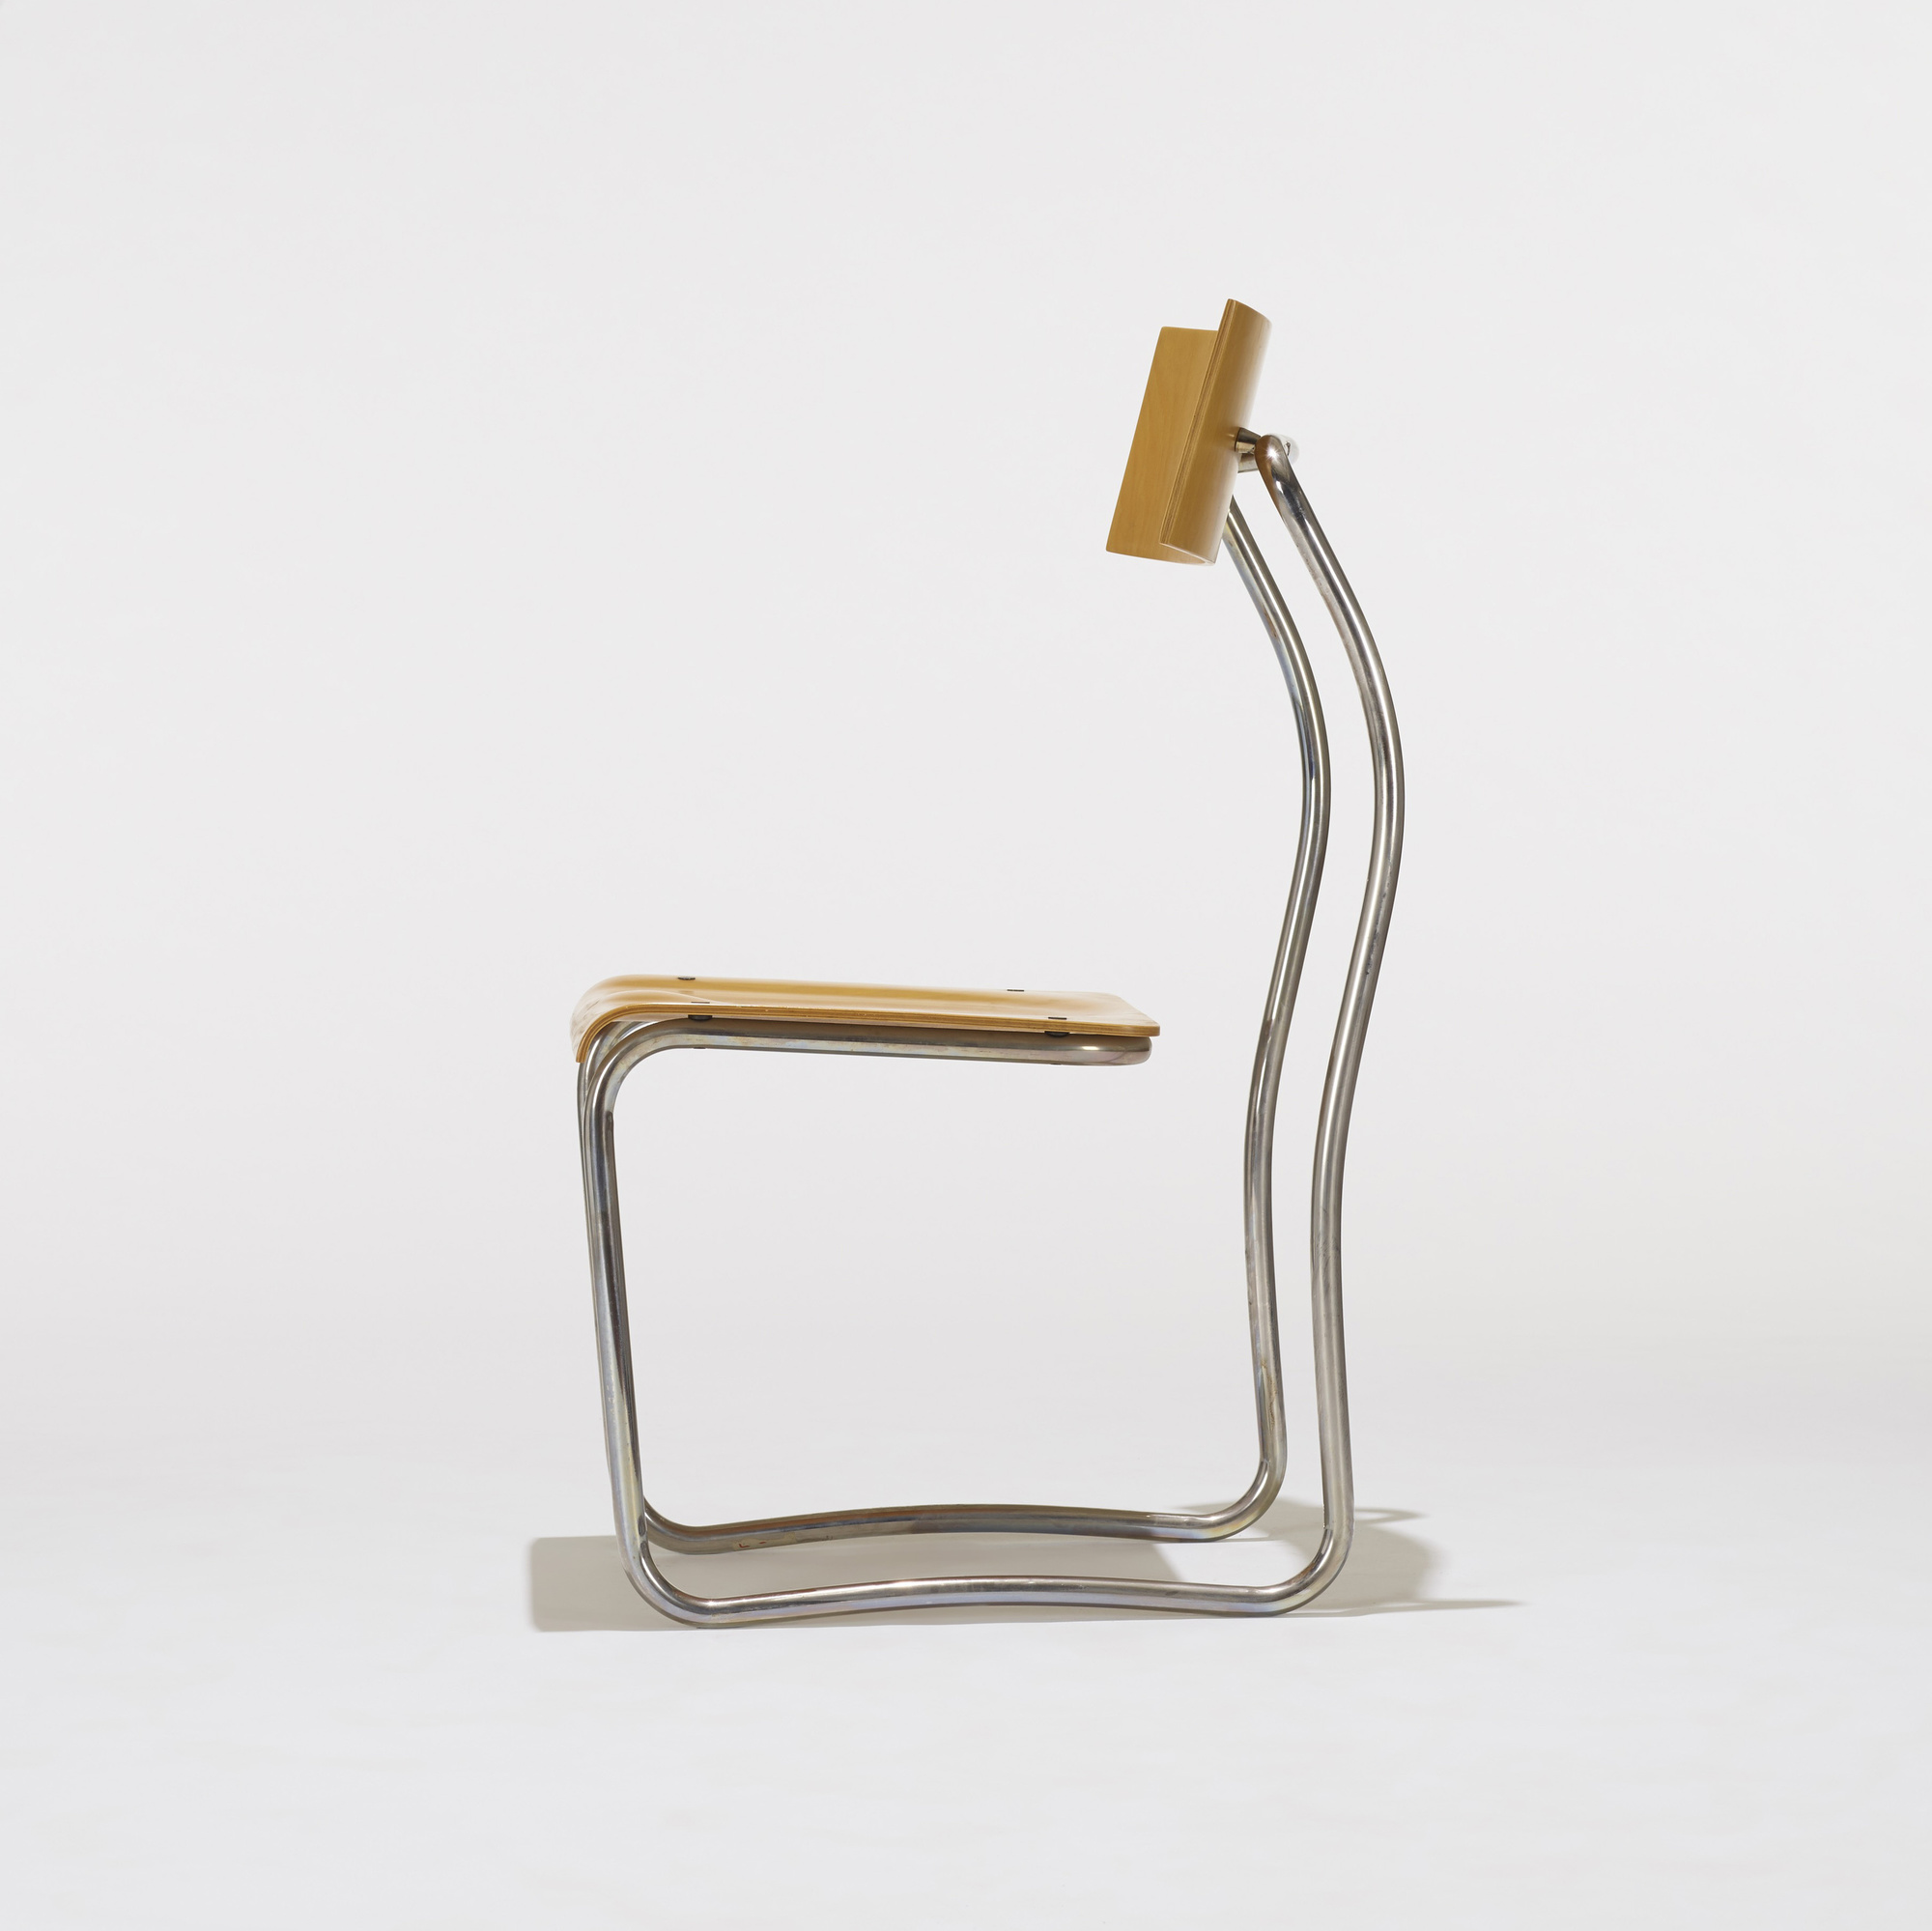 348: Giuseppe Terragni / Lariana chair (3 of 3)